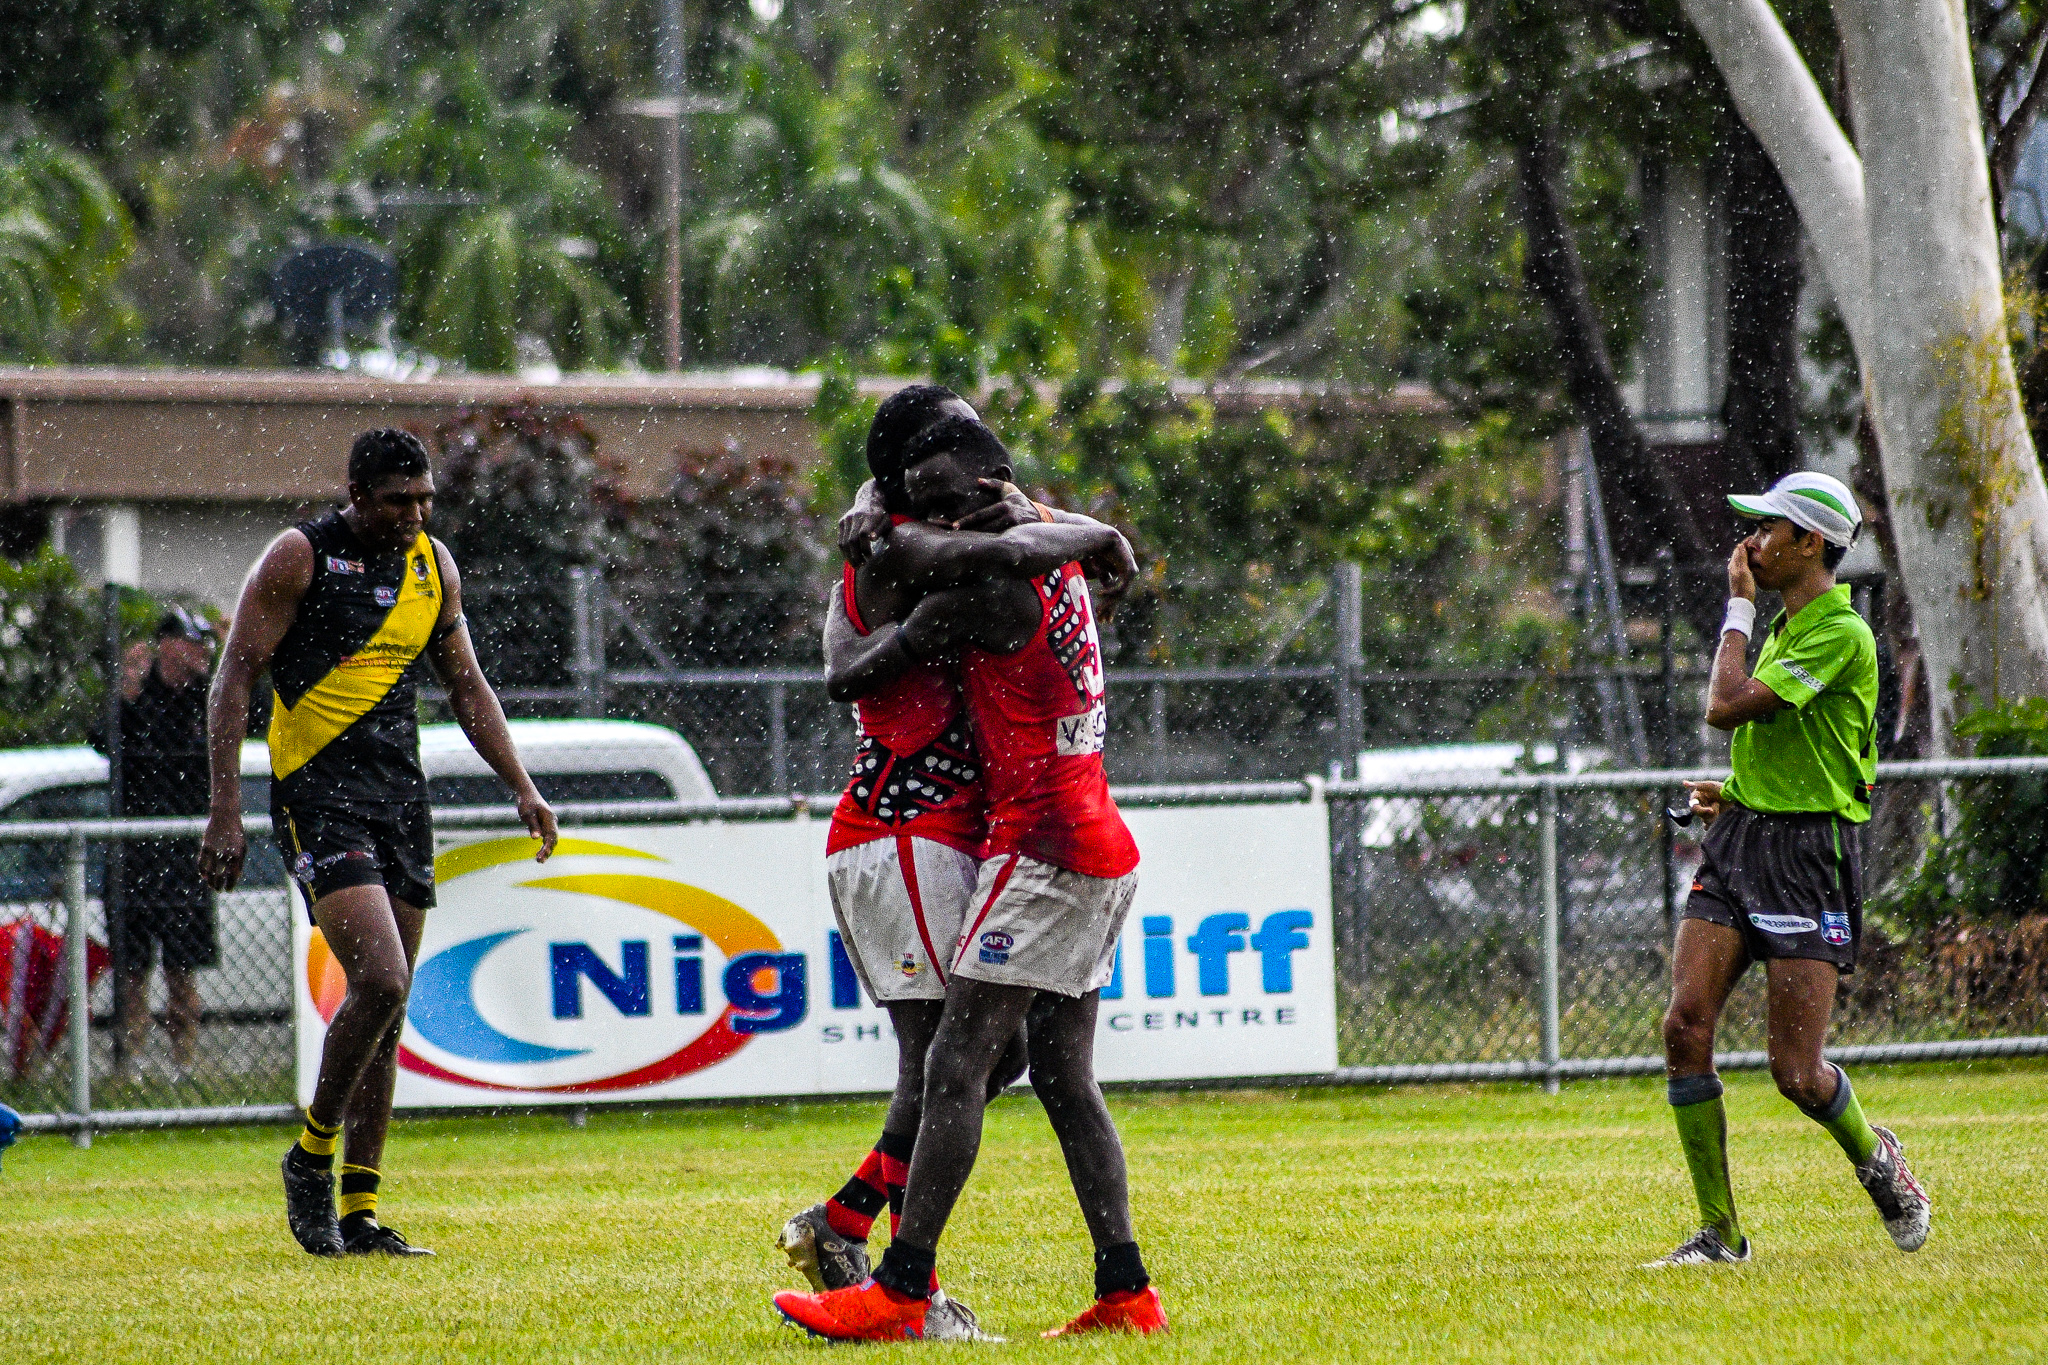 More than a game in the Tiwi Islands, footy helps heal a hurting community